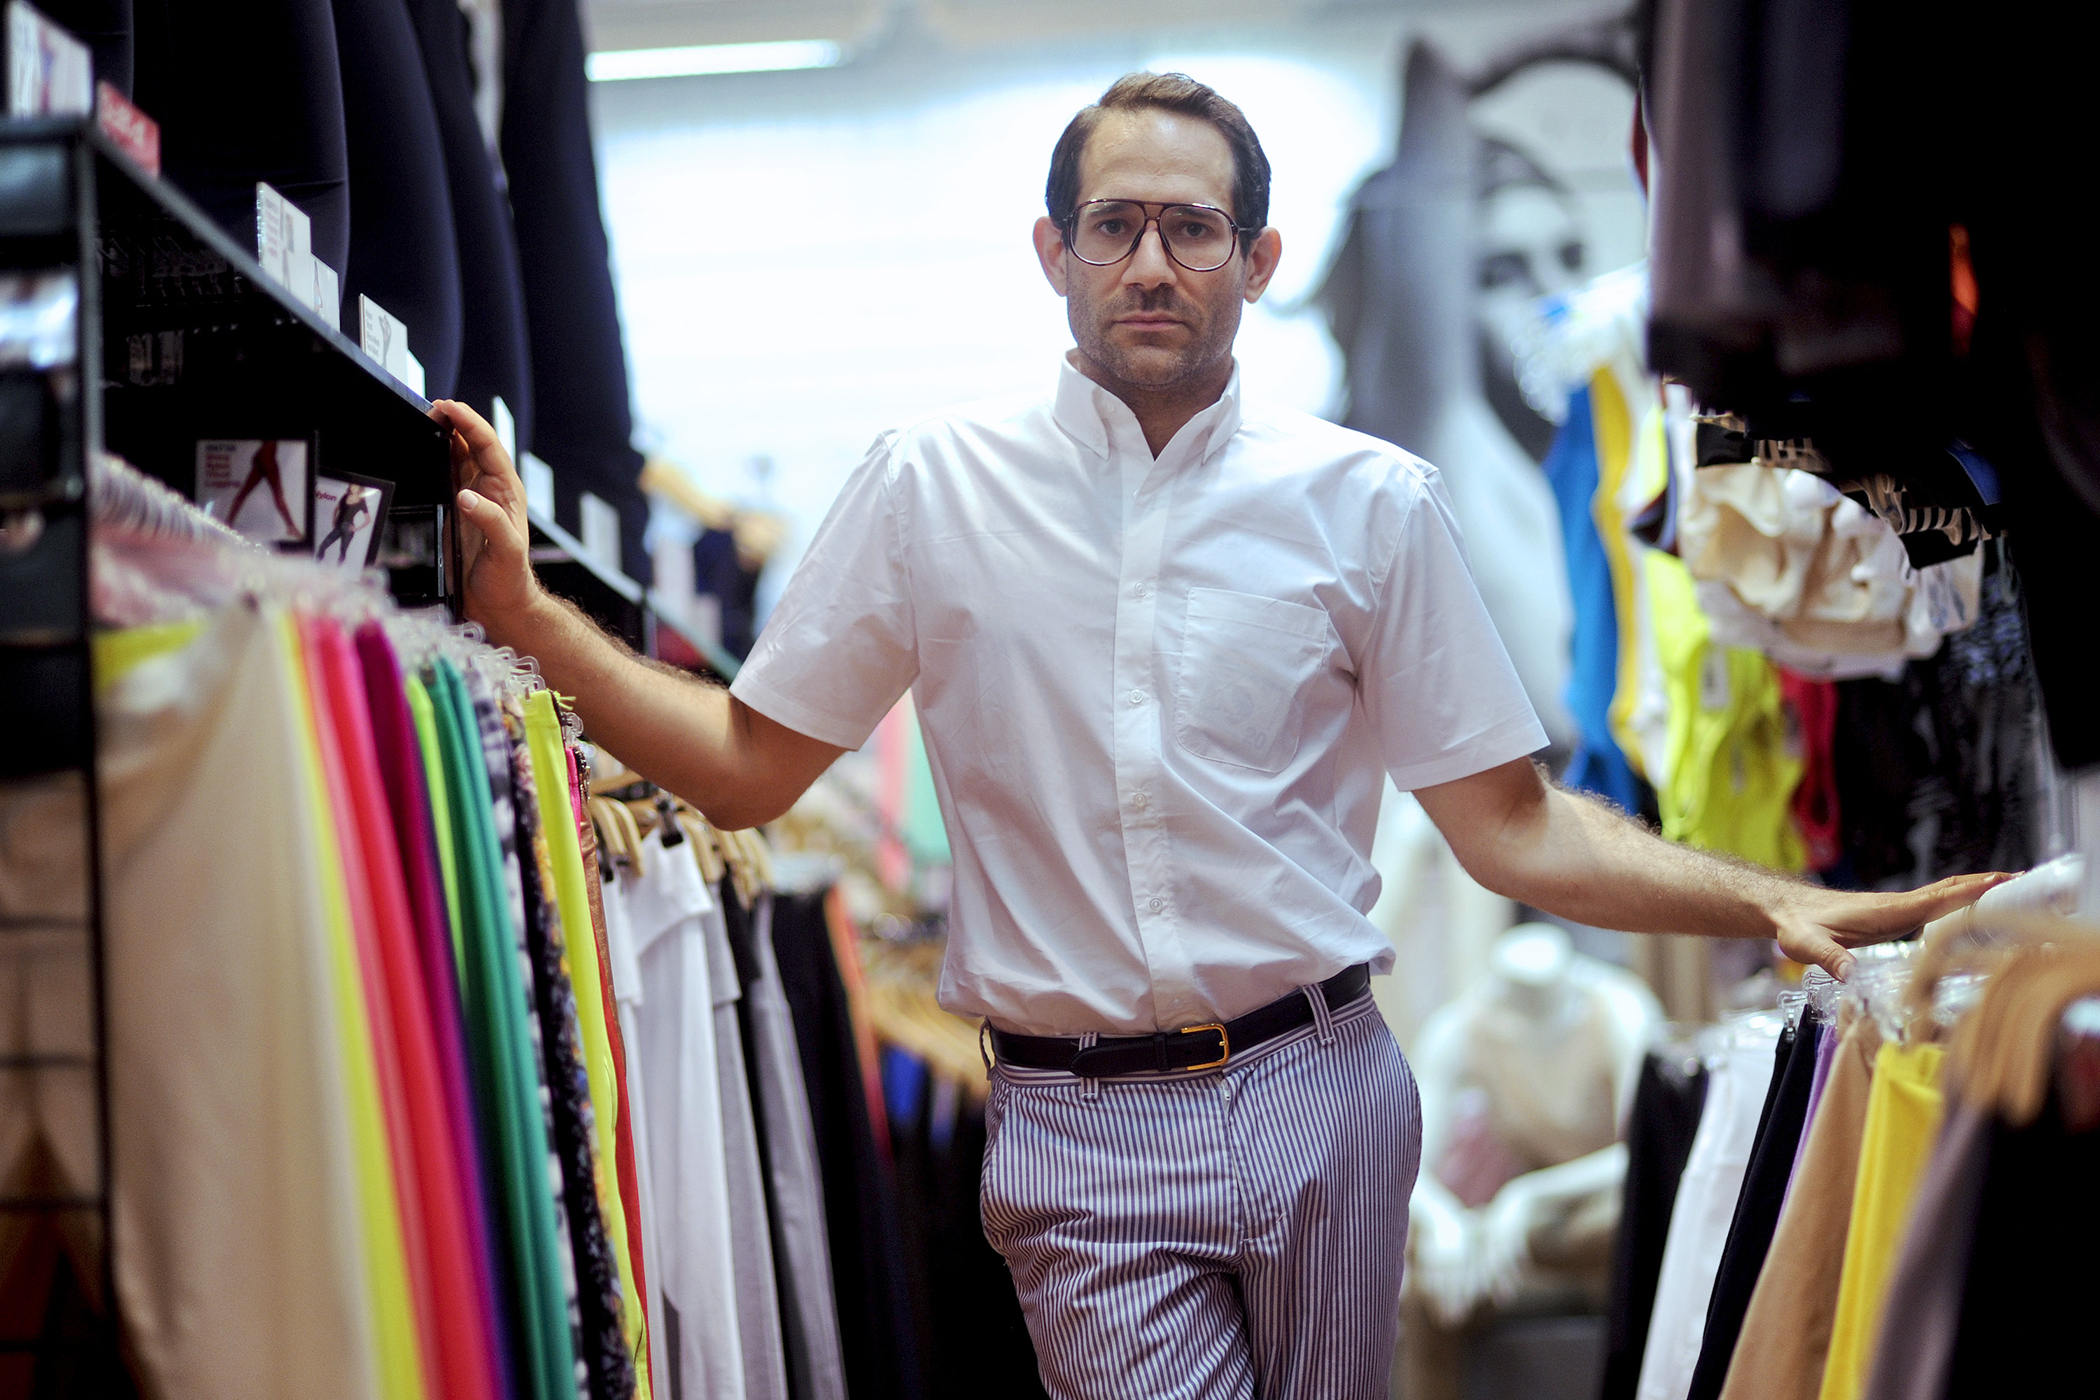 Dov Charney, chairman and chief executive officer of American Apparel Inc., stands for a portrait in a company retail store in New York, U.S., on Thursday, July 29, 2010. Starting the company in a dorm at Tufts University in Medford, Massachusetts, Charney built a worldwide empire of 280 clothing stores by leaping out ahead of mainstream fashion. He personified the racy, risk-taking aesthetics of his business and is now facing the consequences - skittish lenders and investors who doubt his ability to oversee his own creation.